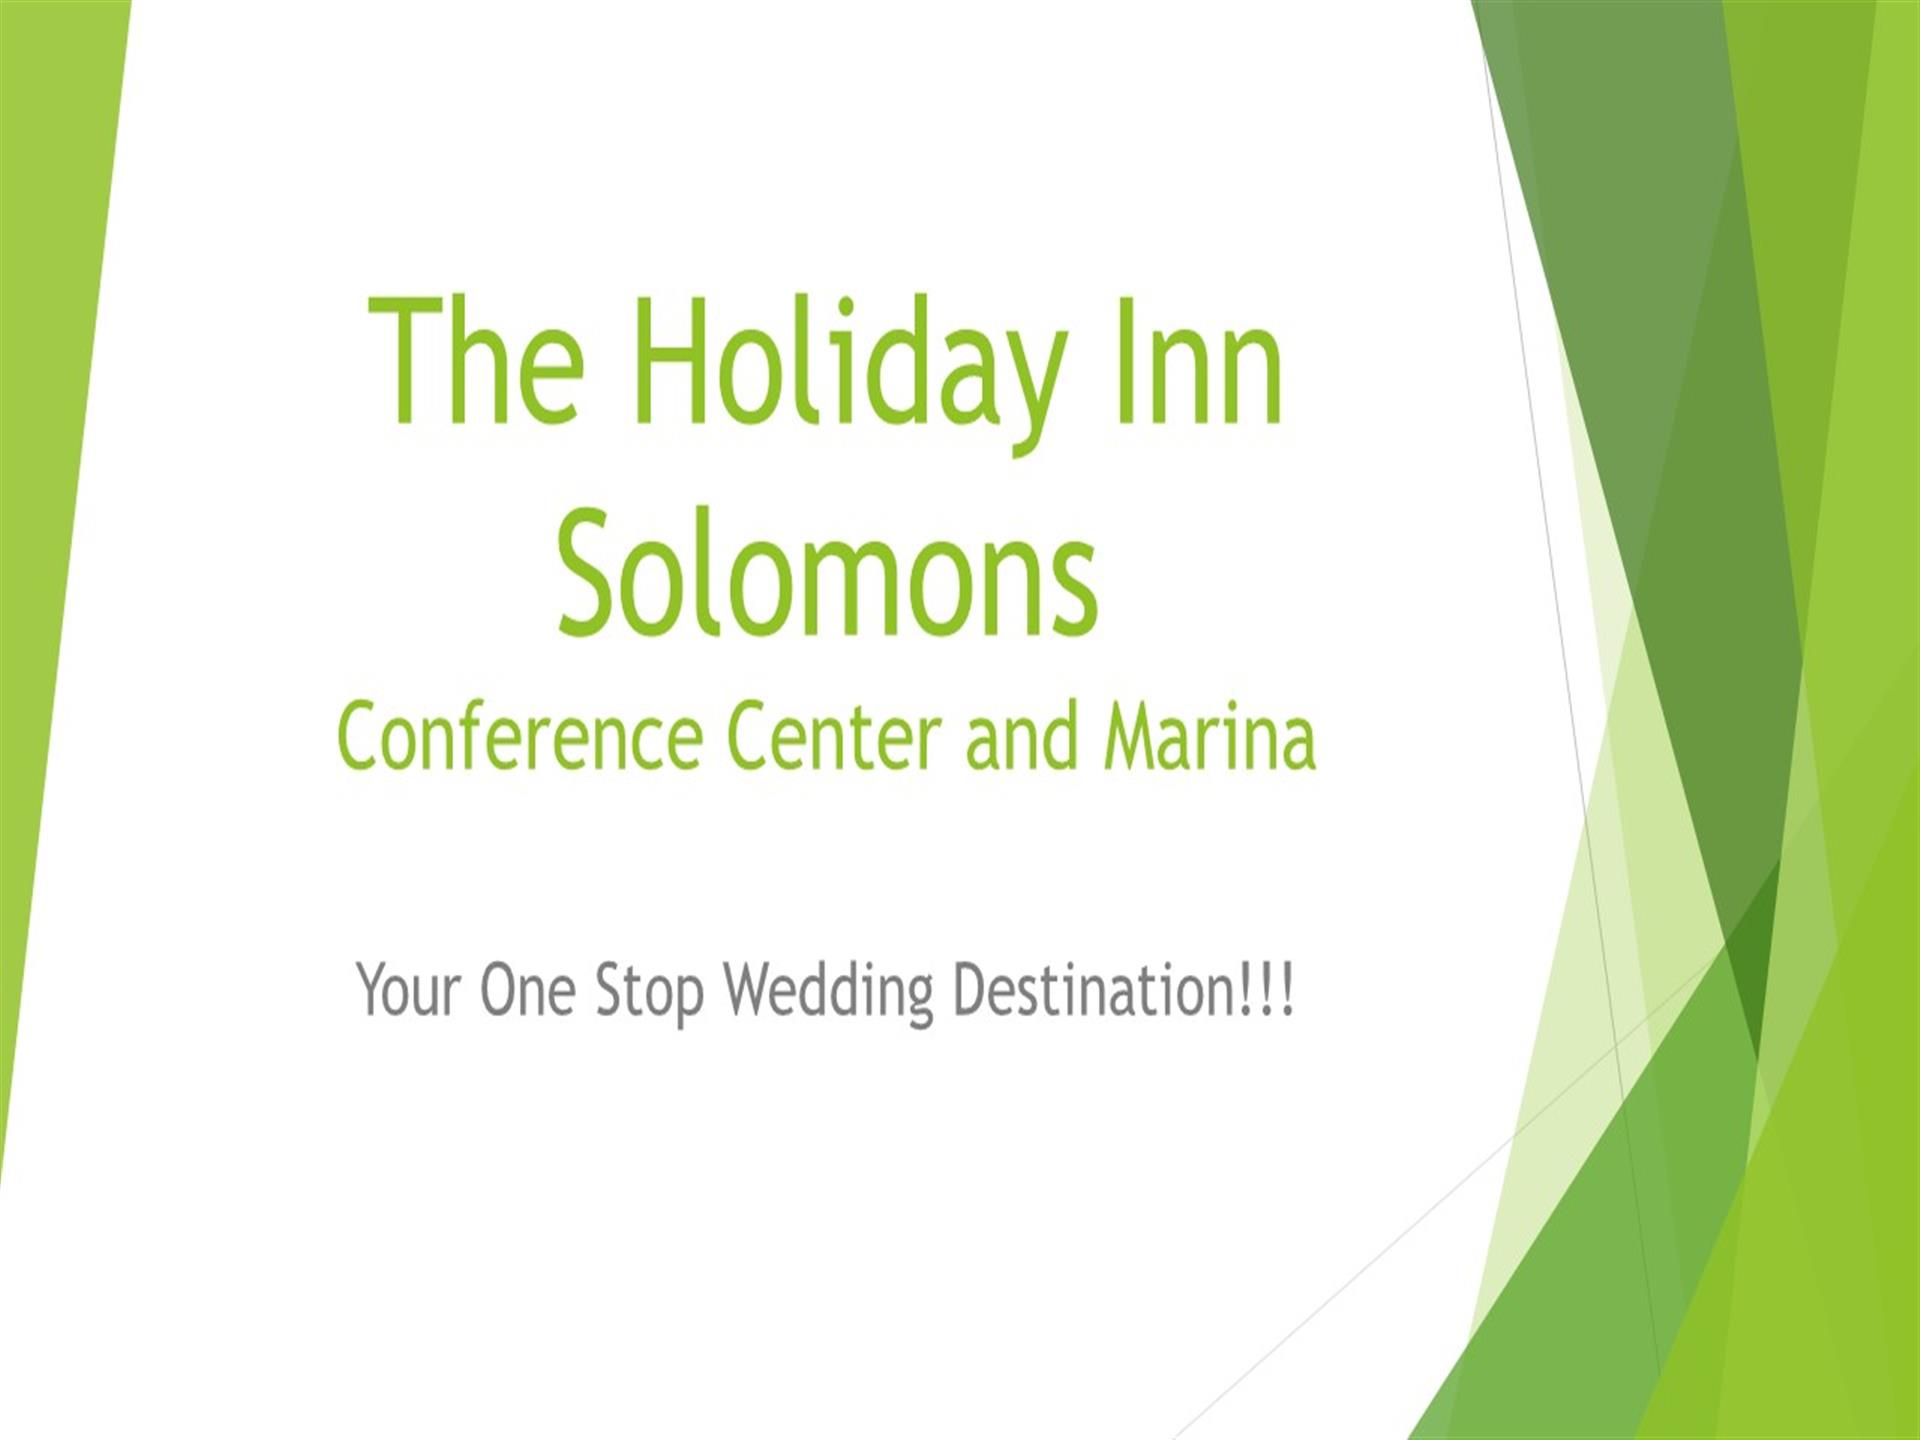 The holiday inn solomons conference center and marina. Your one-stop wedding destination!